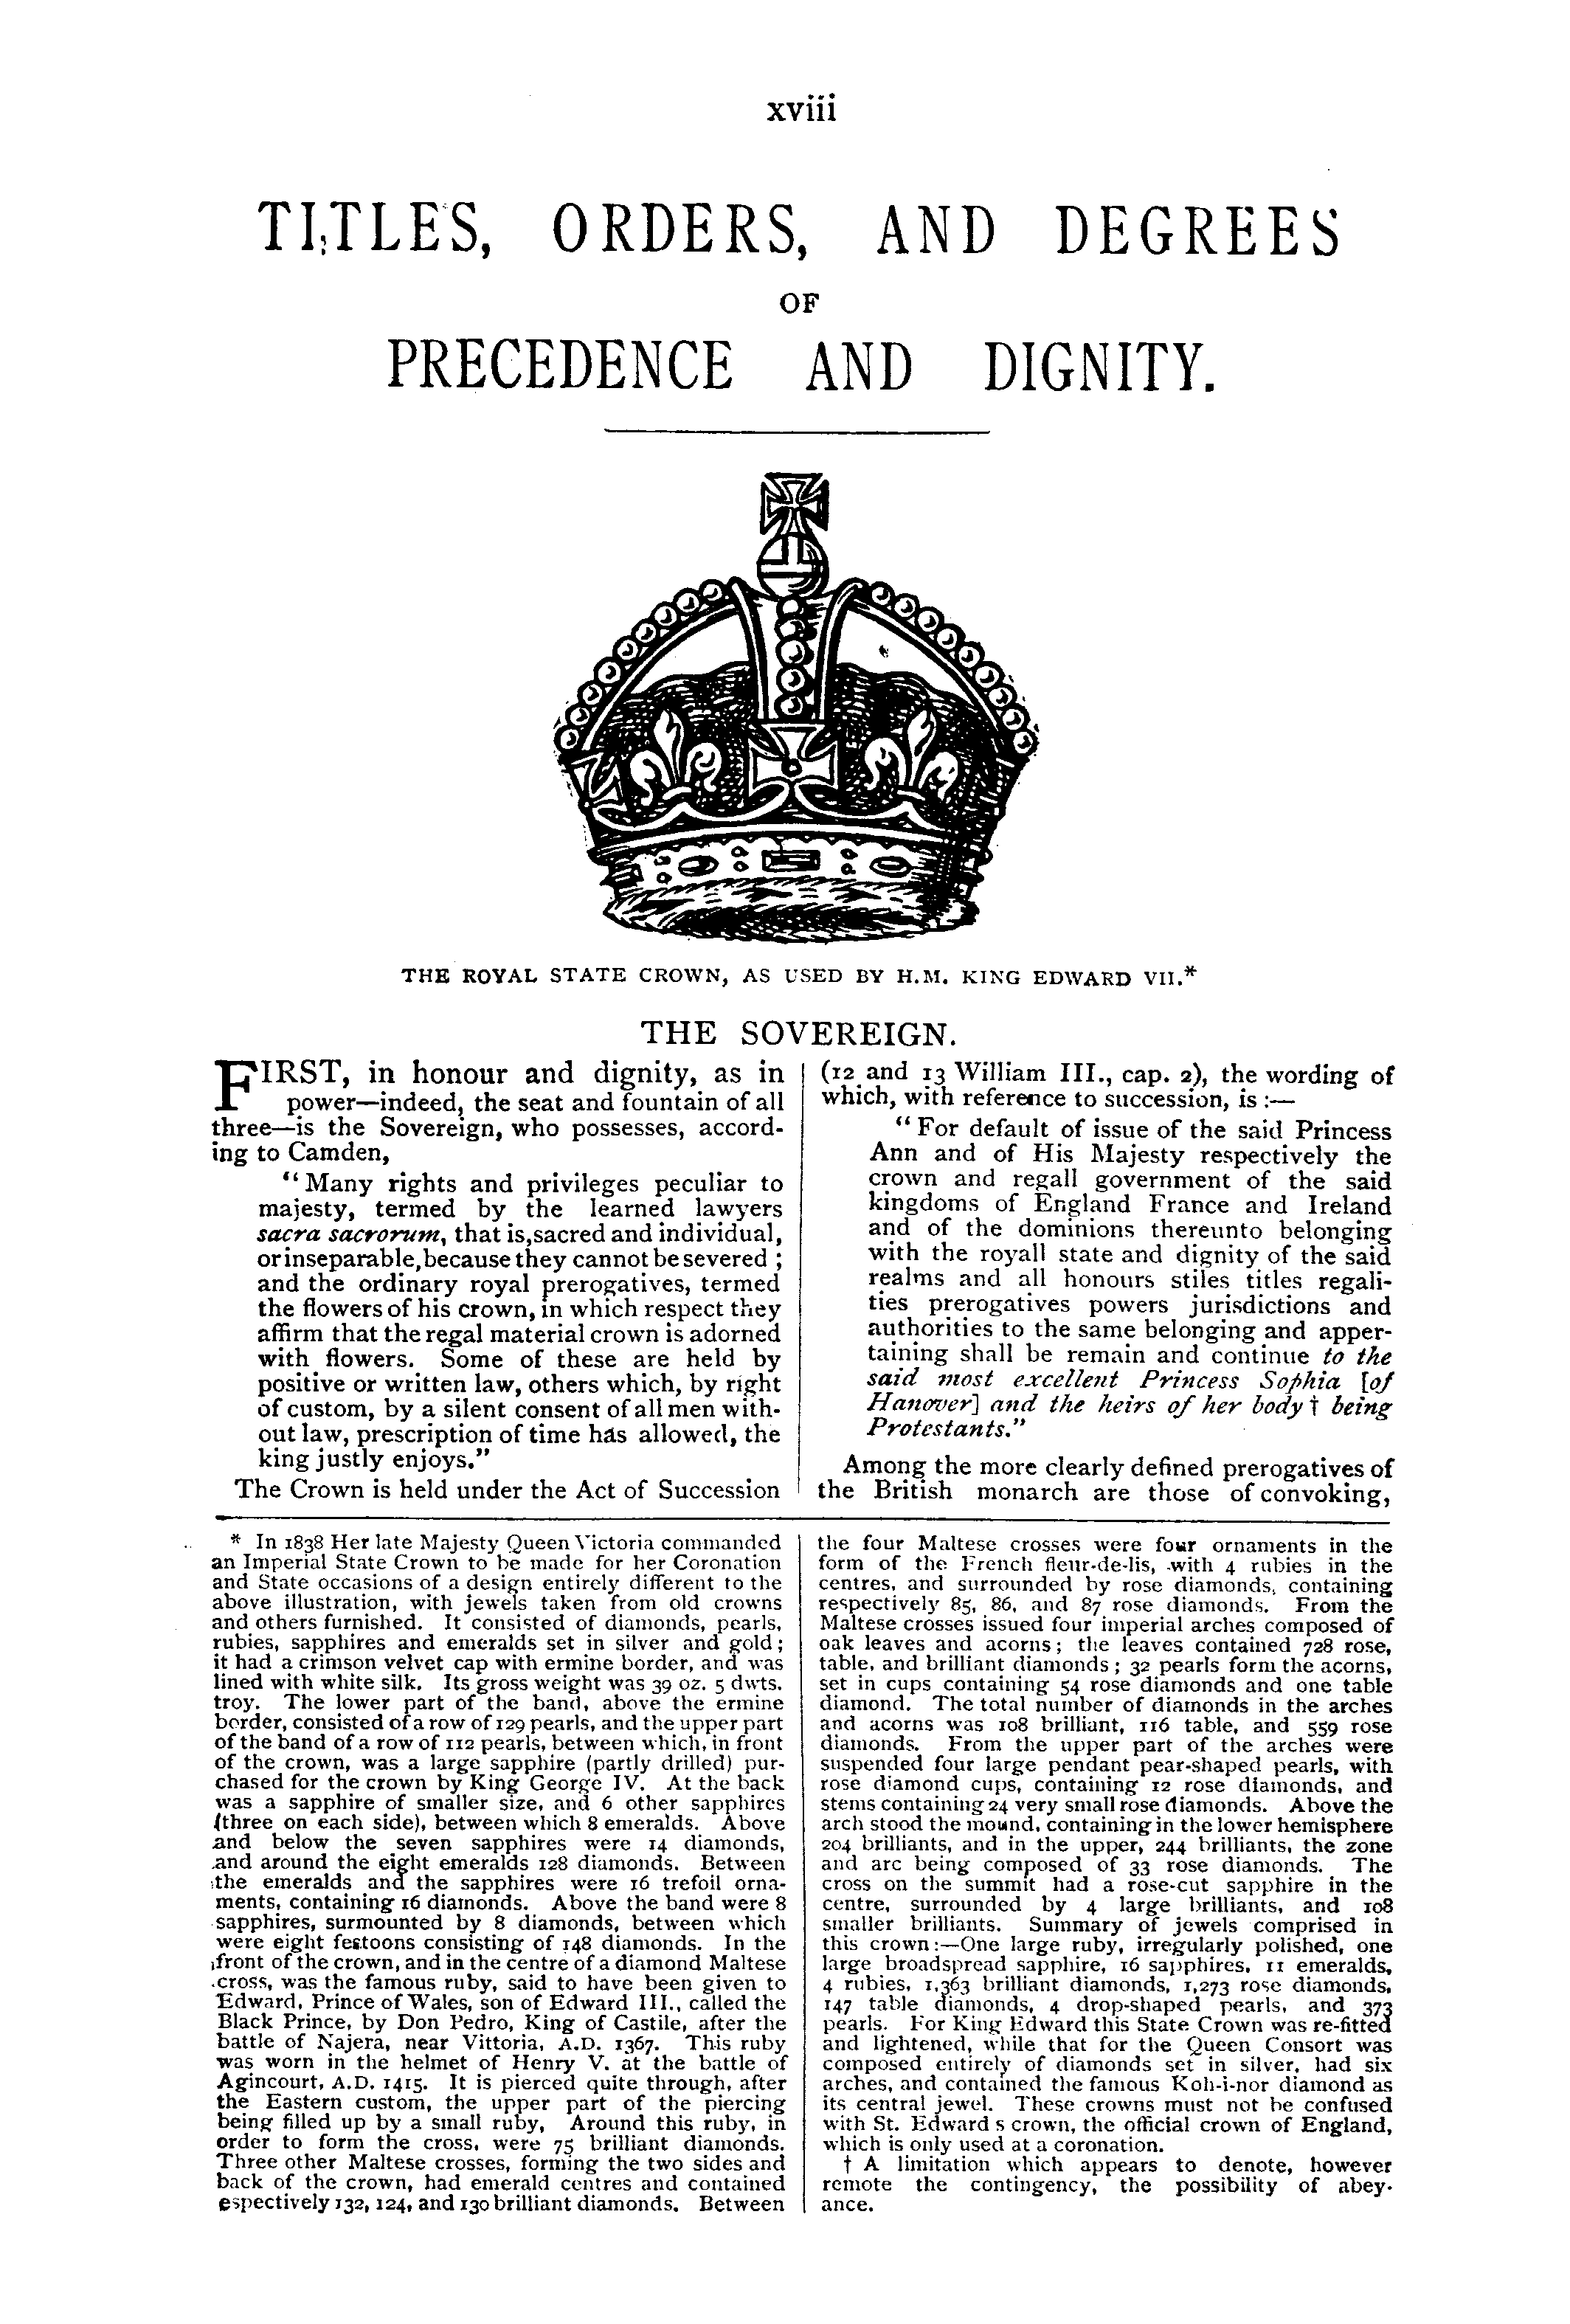 Debrett's Peerage, Baronetage, Knightage and Companionage, 1904 page xviii - click to open larger version in a new window